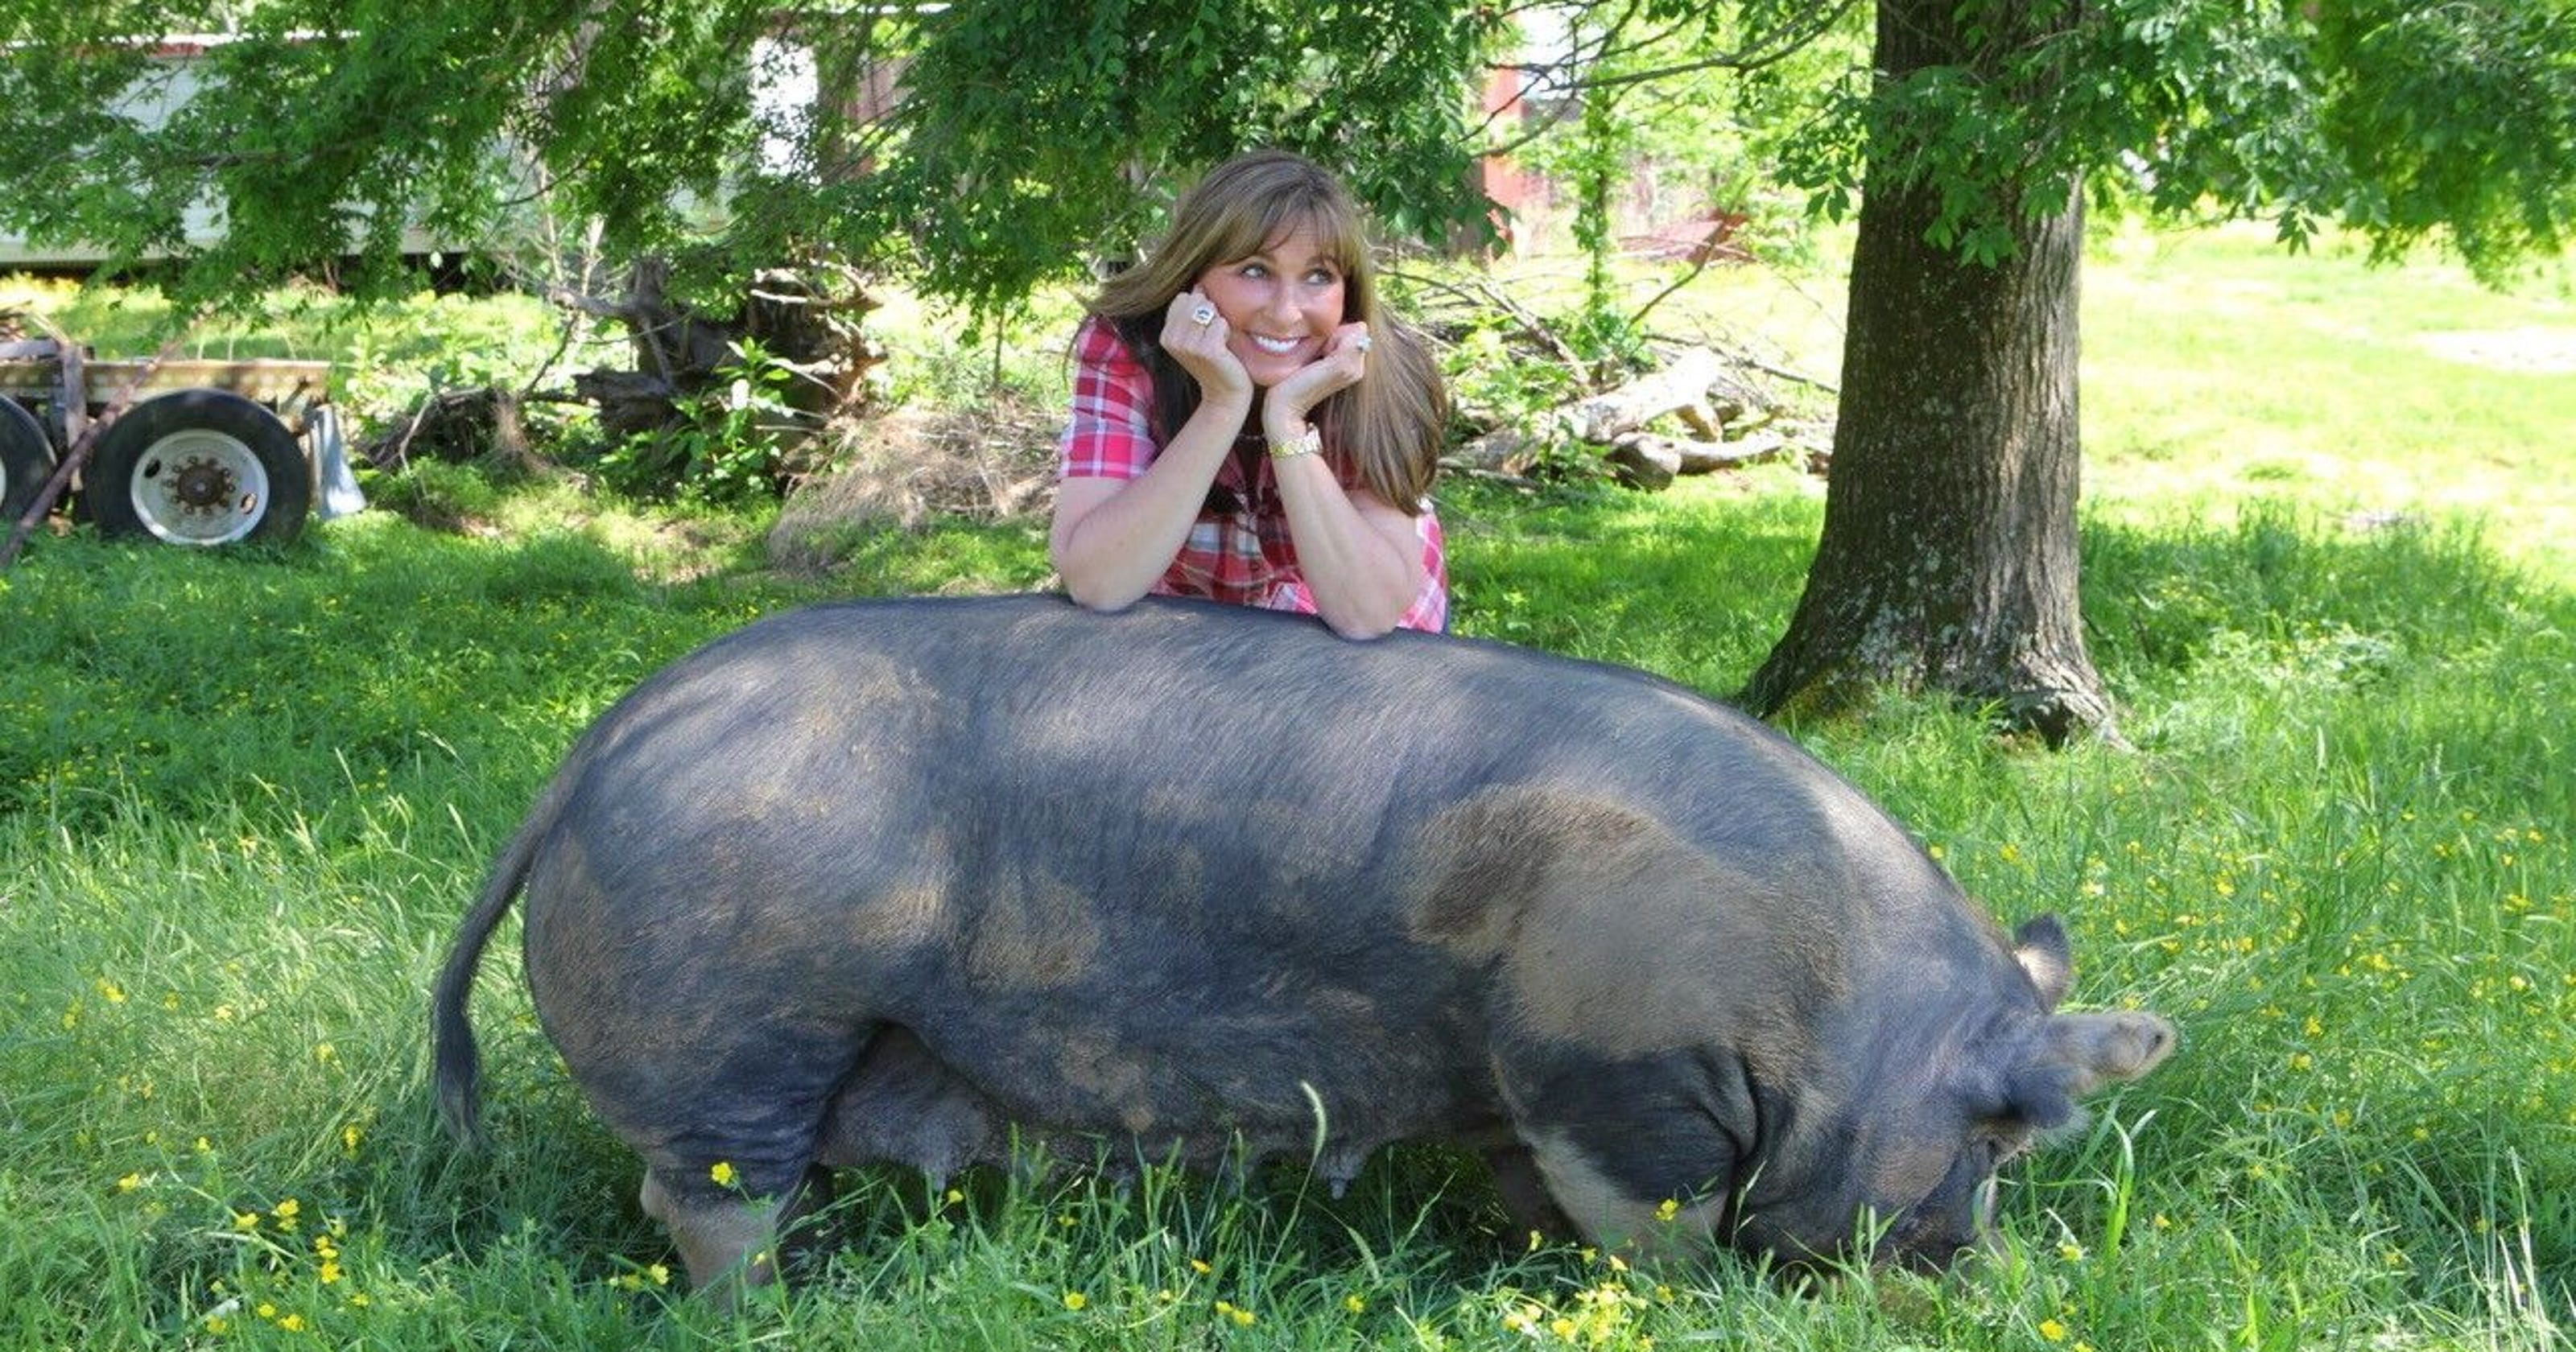 Winningest woman in BBQ breeds perfect pig for Memphis in May